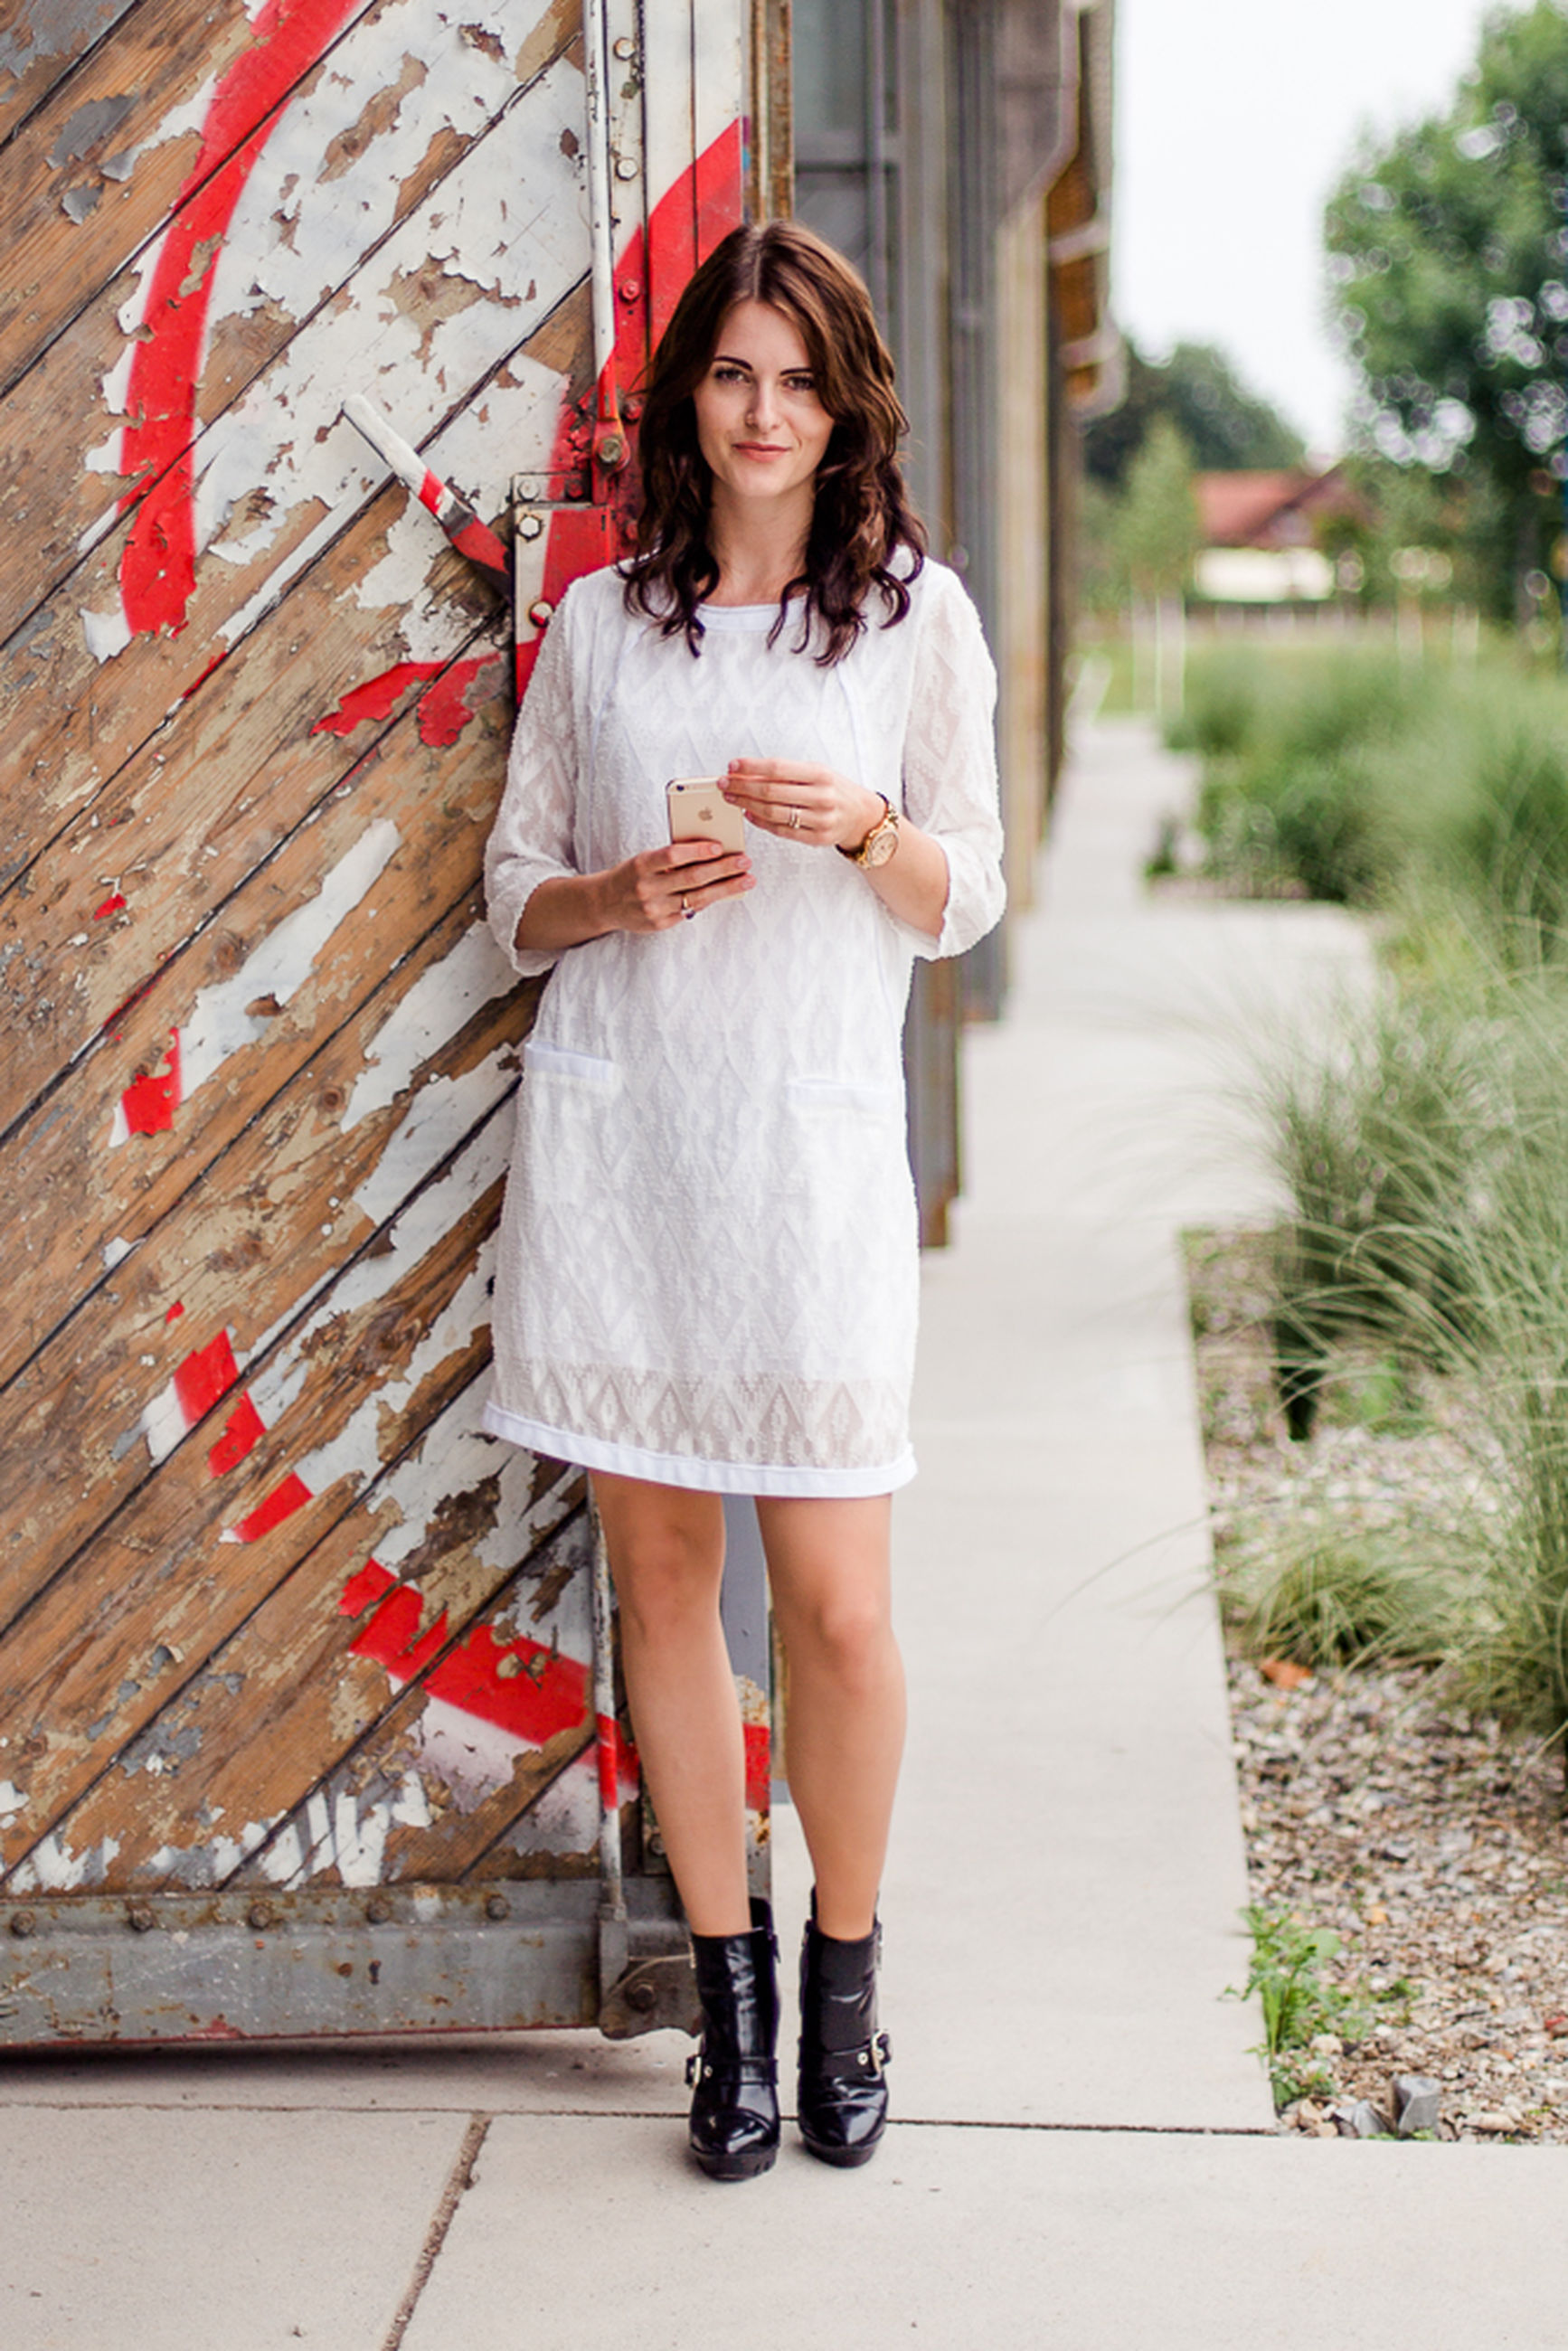 young adult, casual clothing, person, young women, full length, portrait, looking at camera, front view, lifestyles, standing, leisure activity, smiling, fashion, long hair, dress, outdoors, built structure